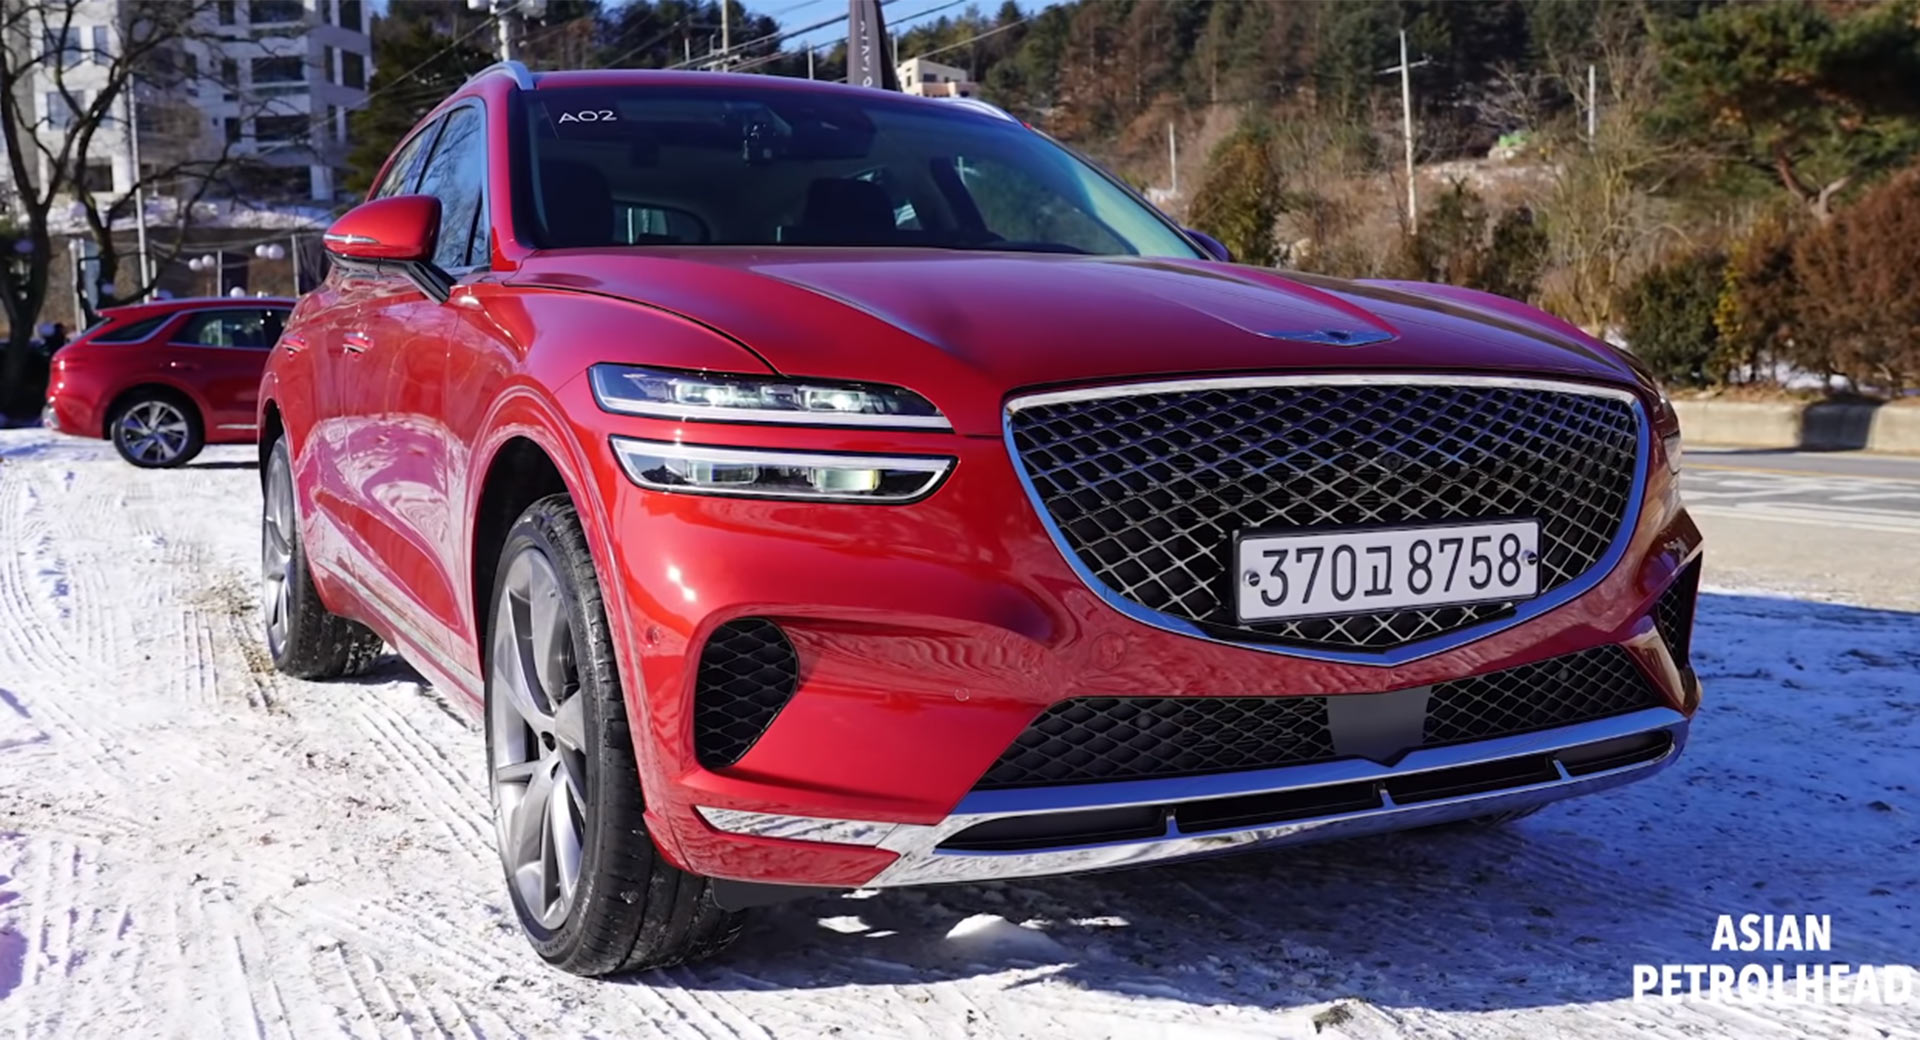 Genesis seems to have had a hit with the 2022 GV70